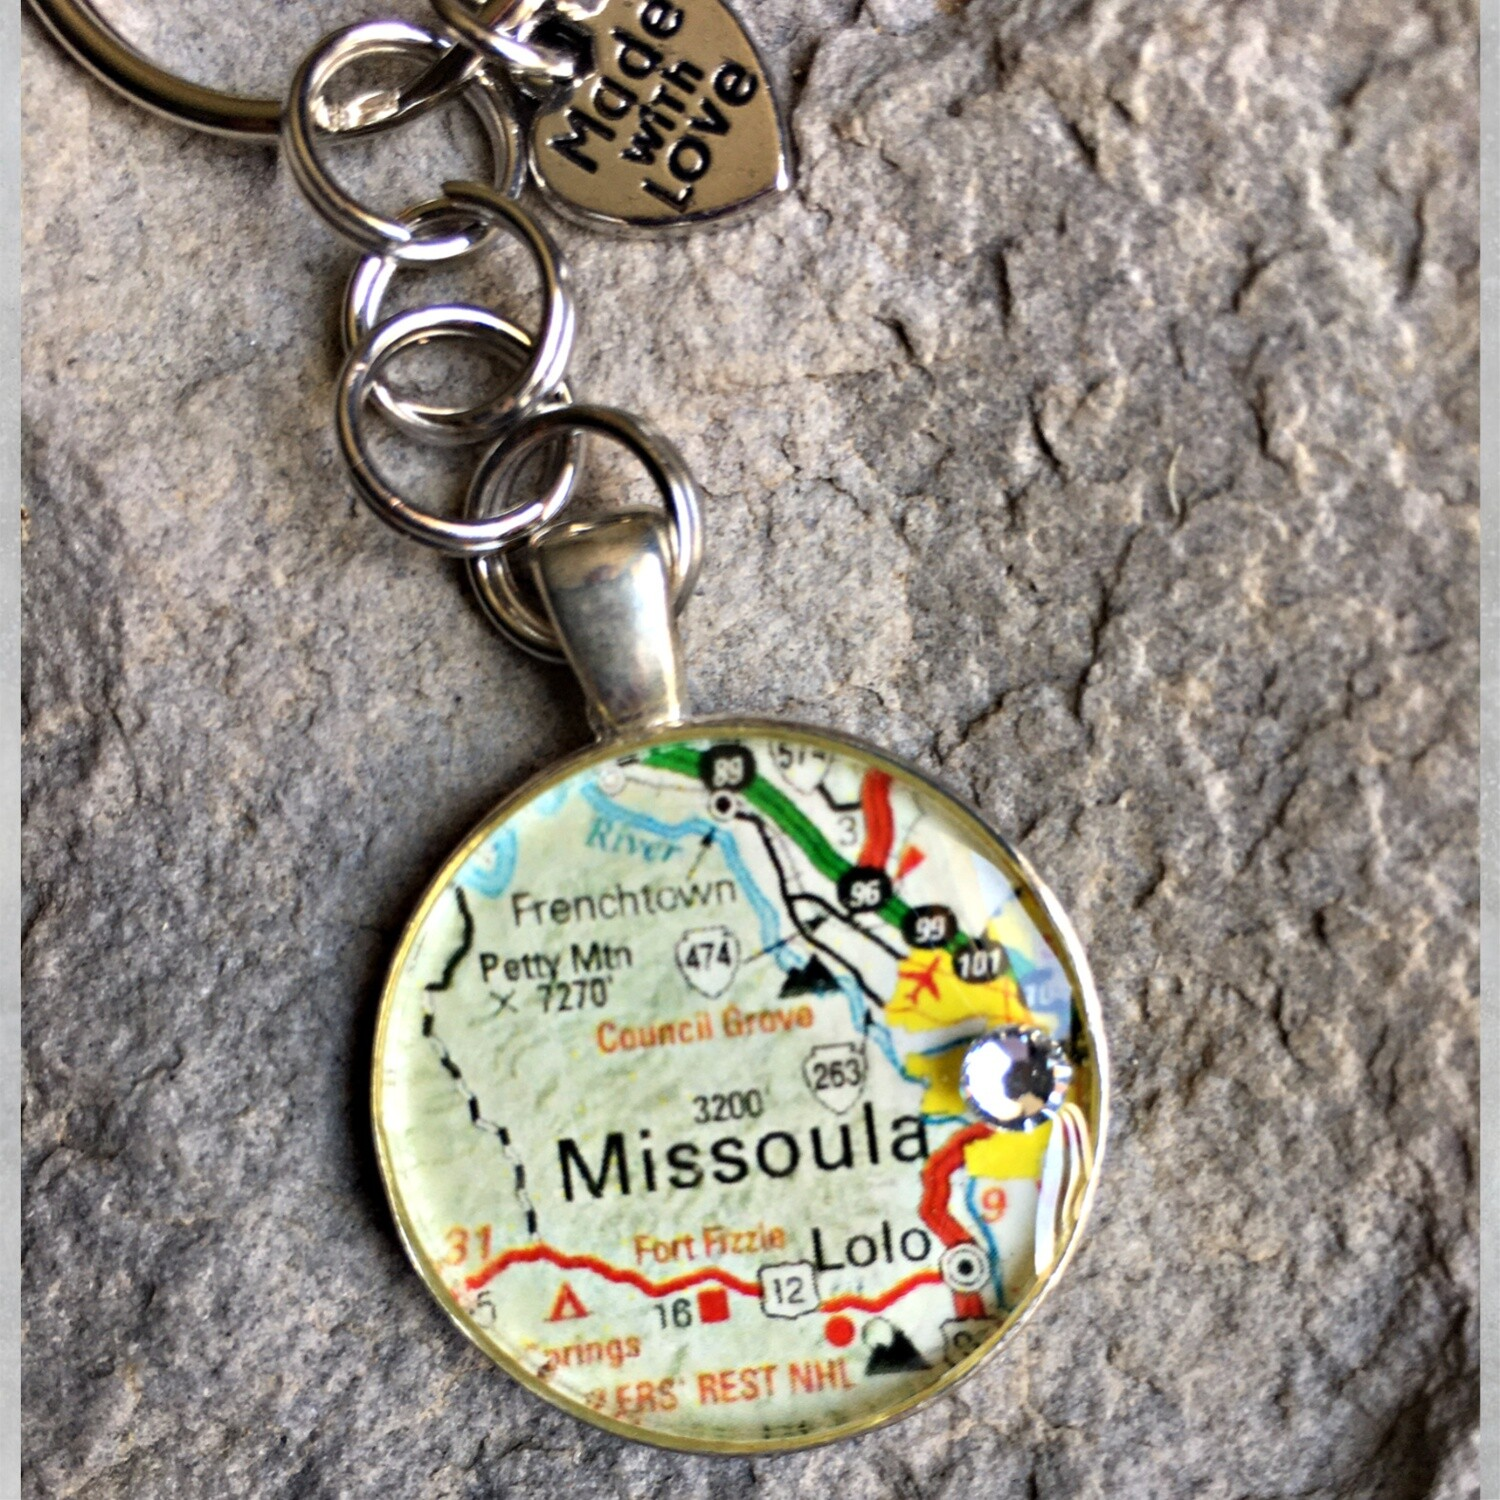 Missoula Map Keychain 40-19-21